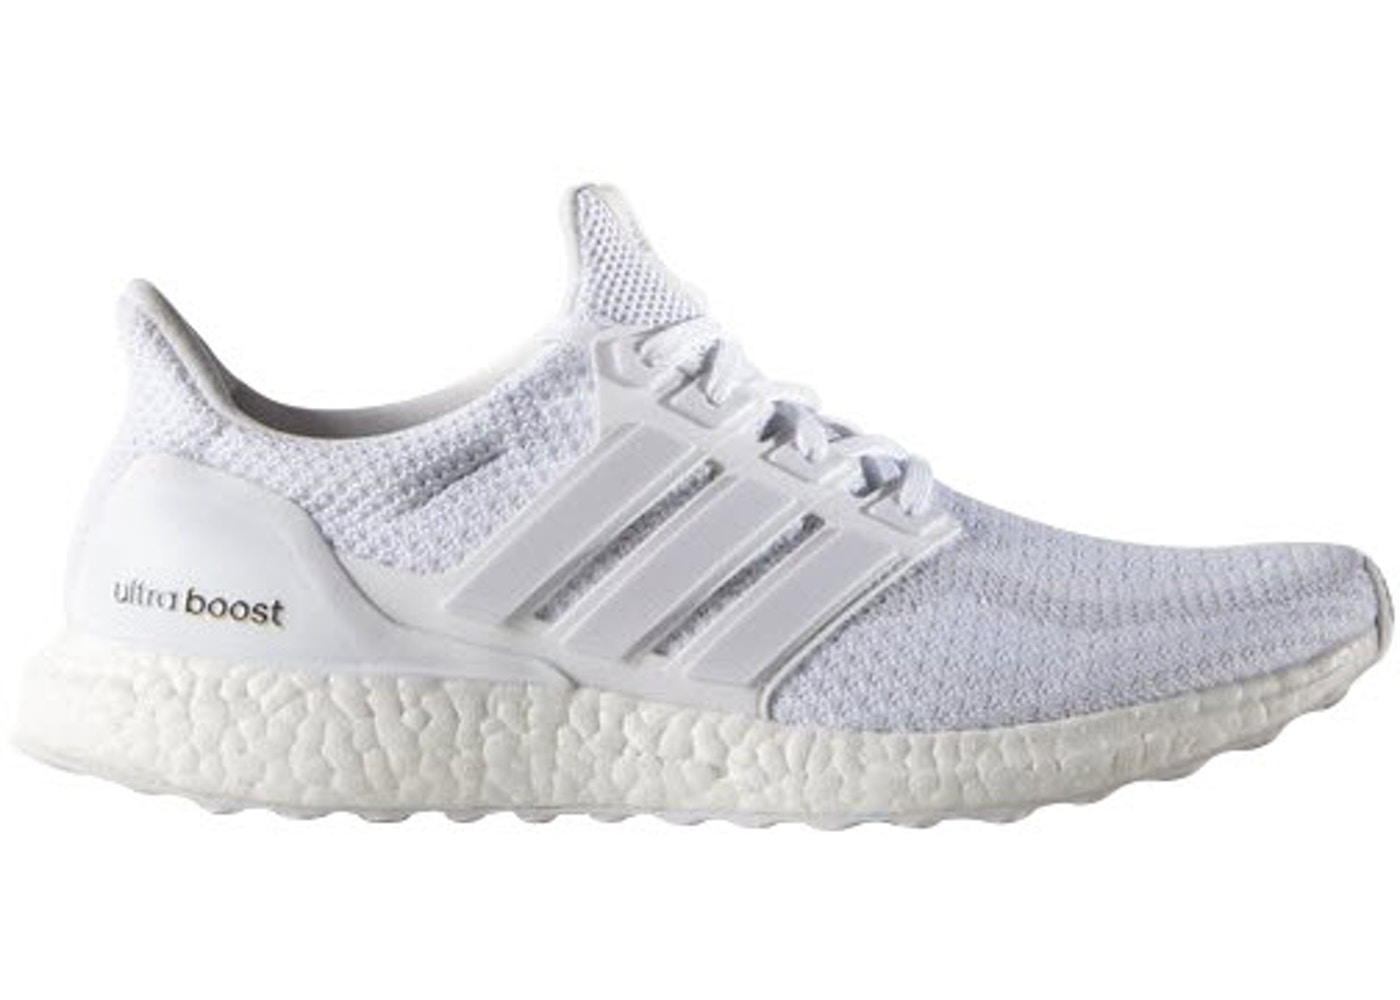 7ec4f5da adidas Ultra Boost Size 8 Shoes - New Lowest Asks